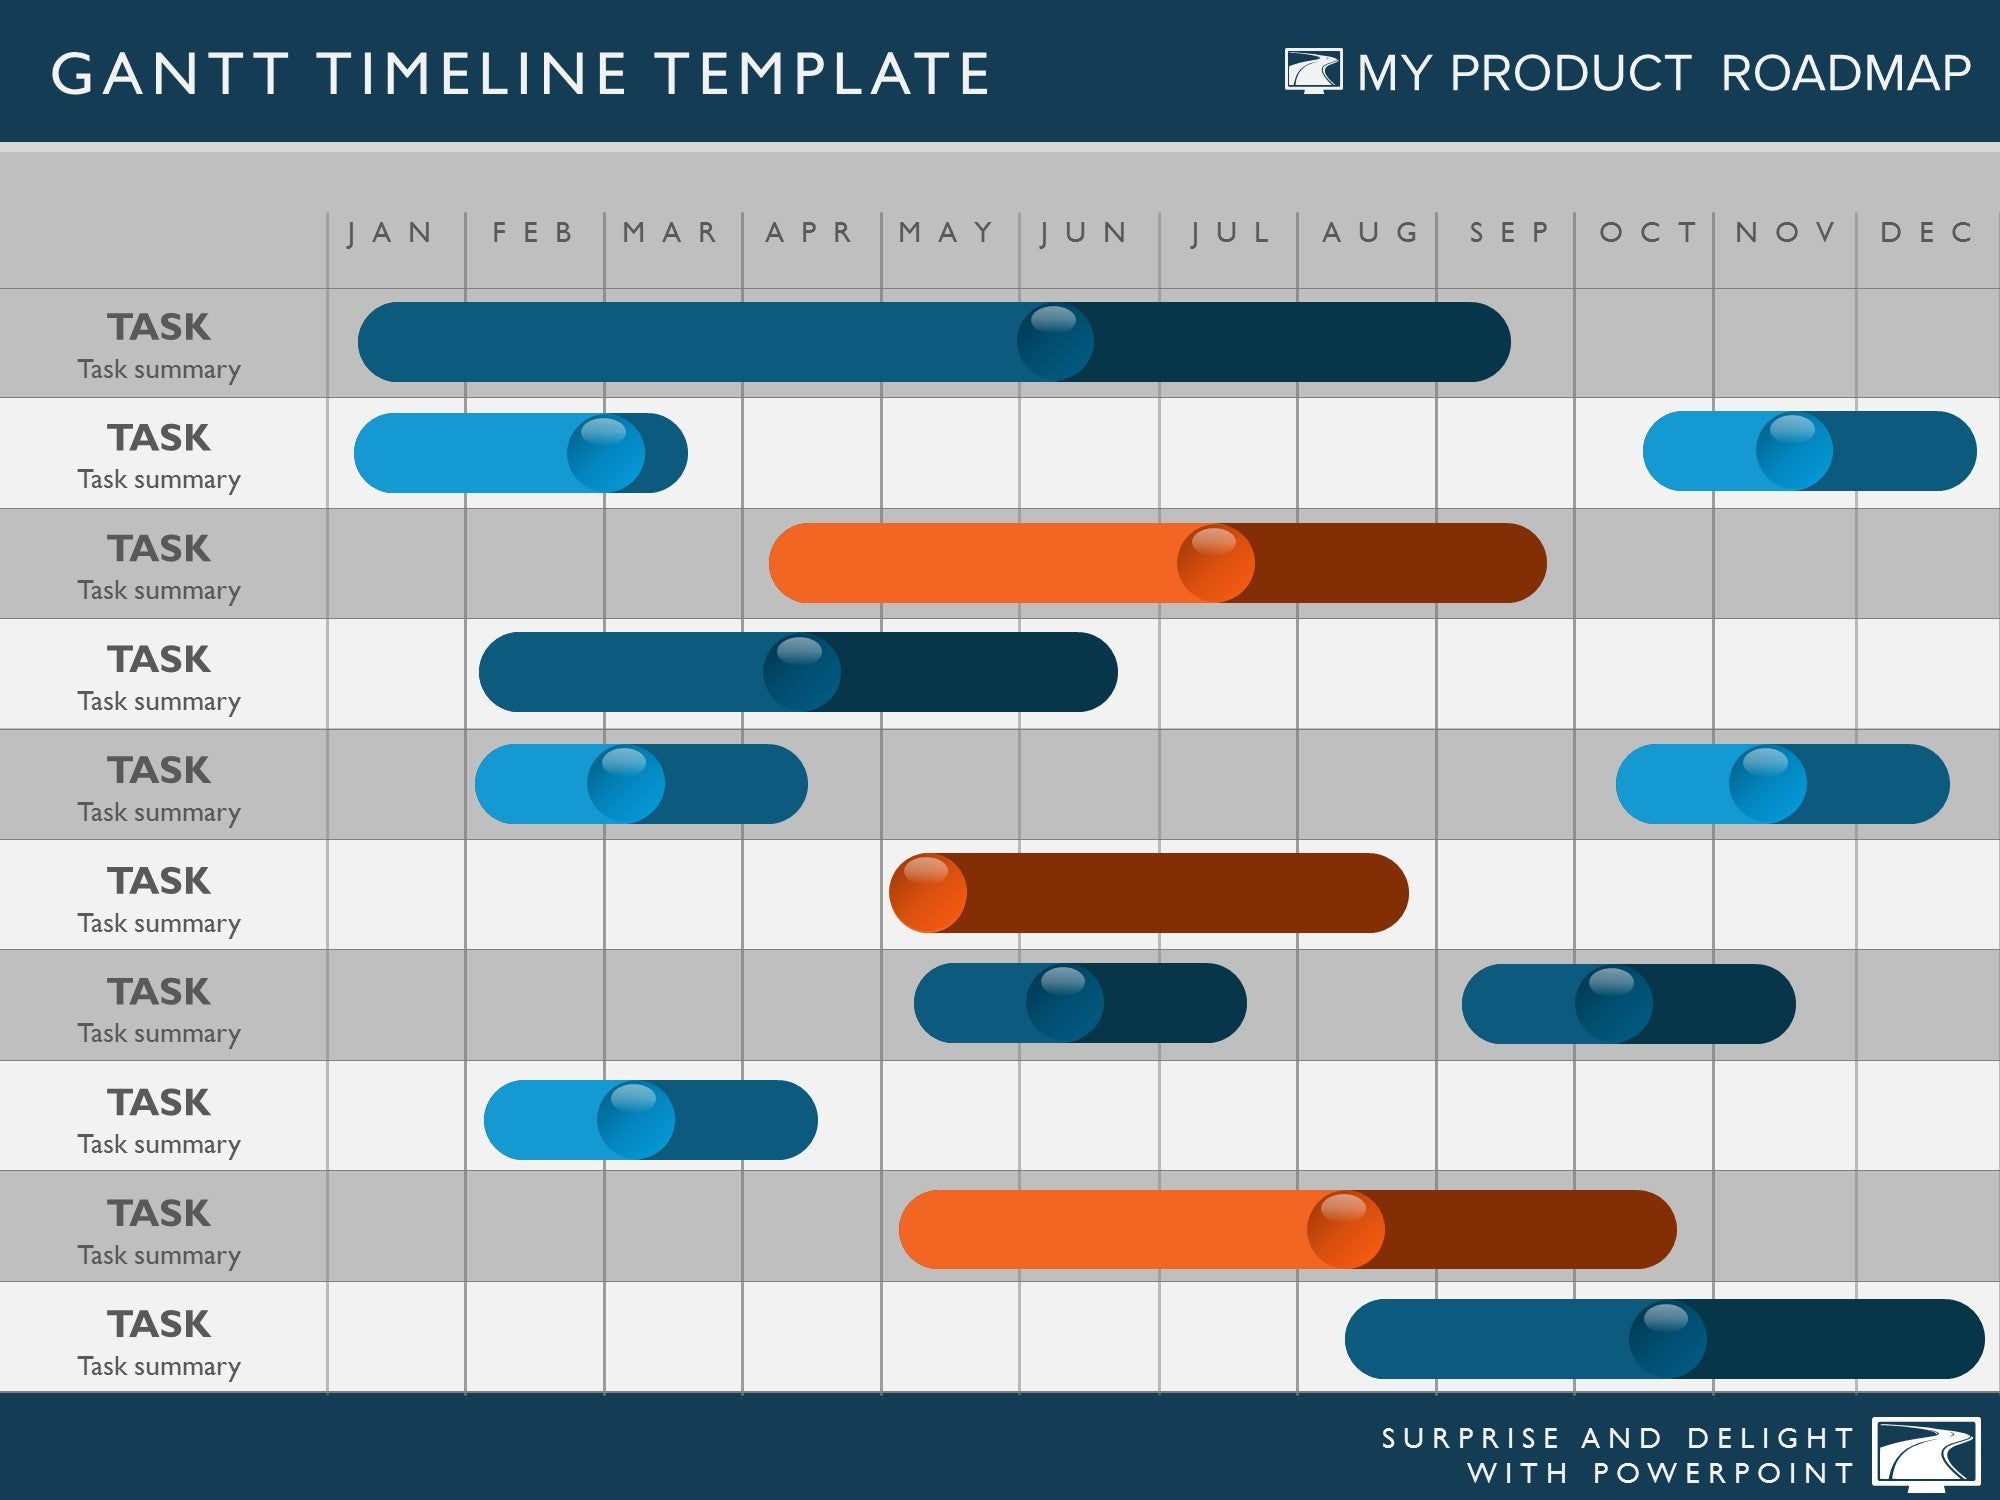 Professional PowerPoint Templates From My Product Roadmap - Roadmap timeline template ppt